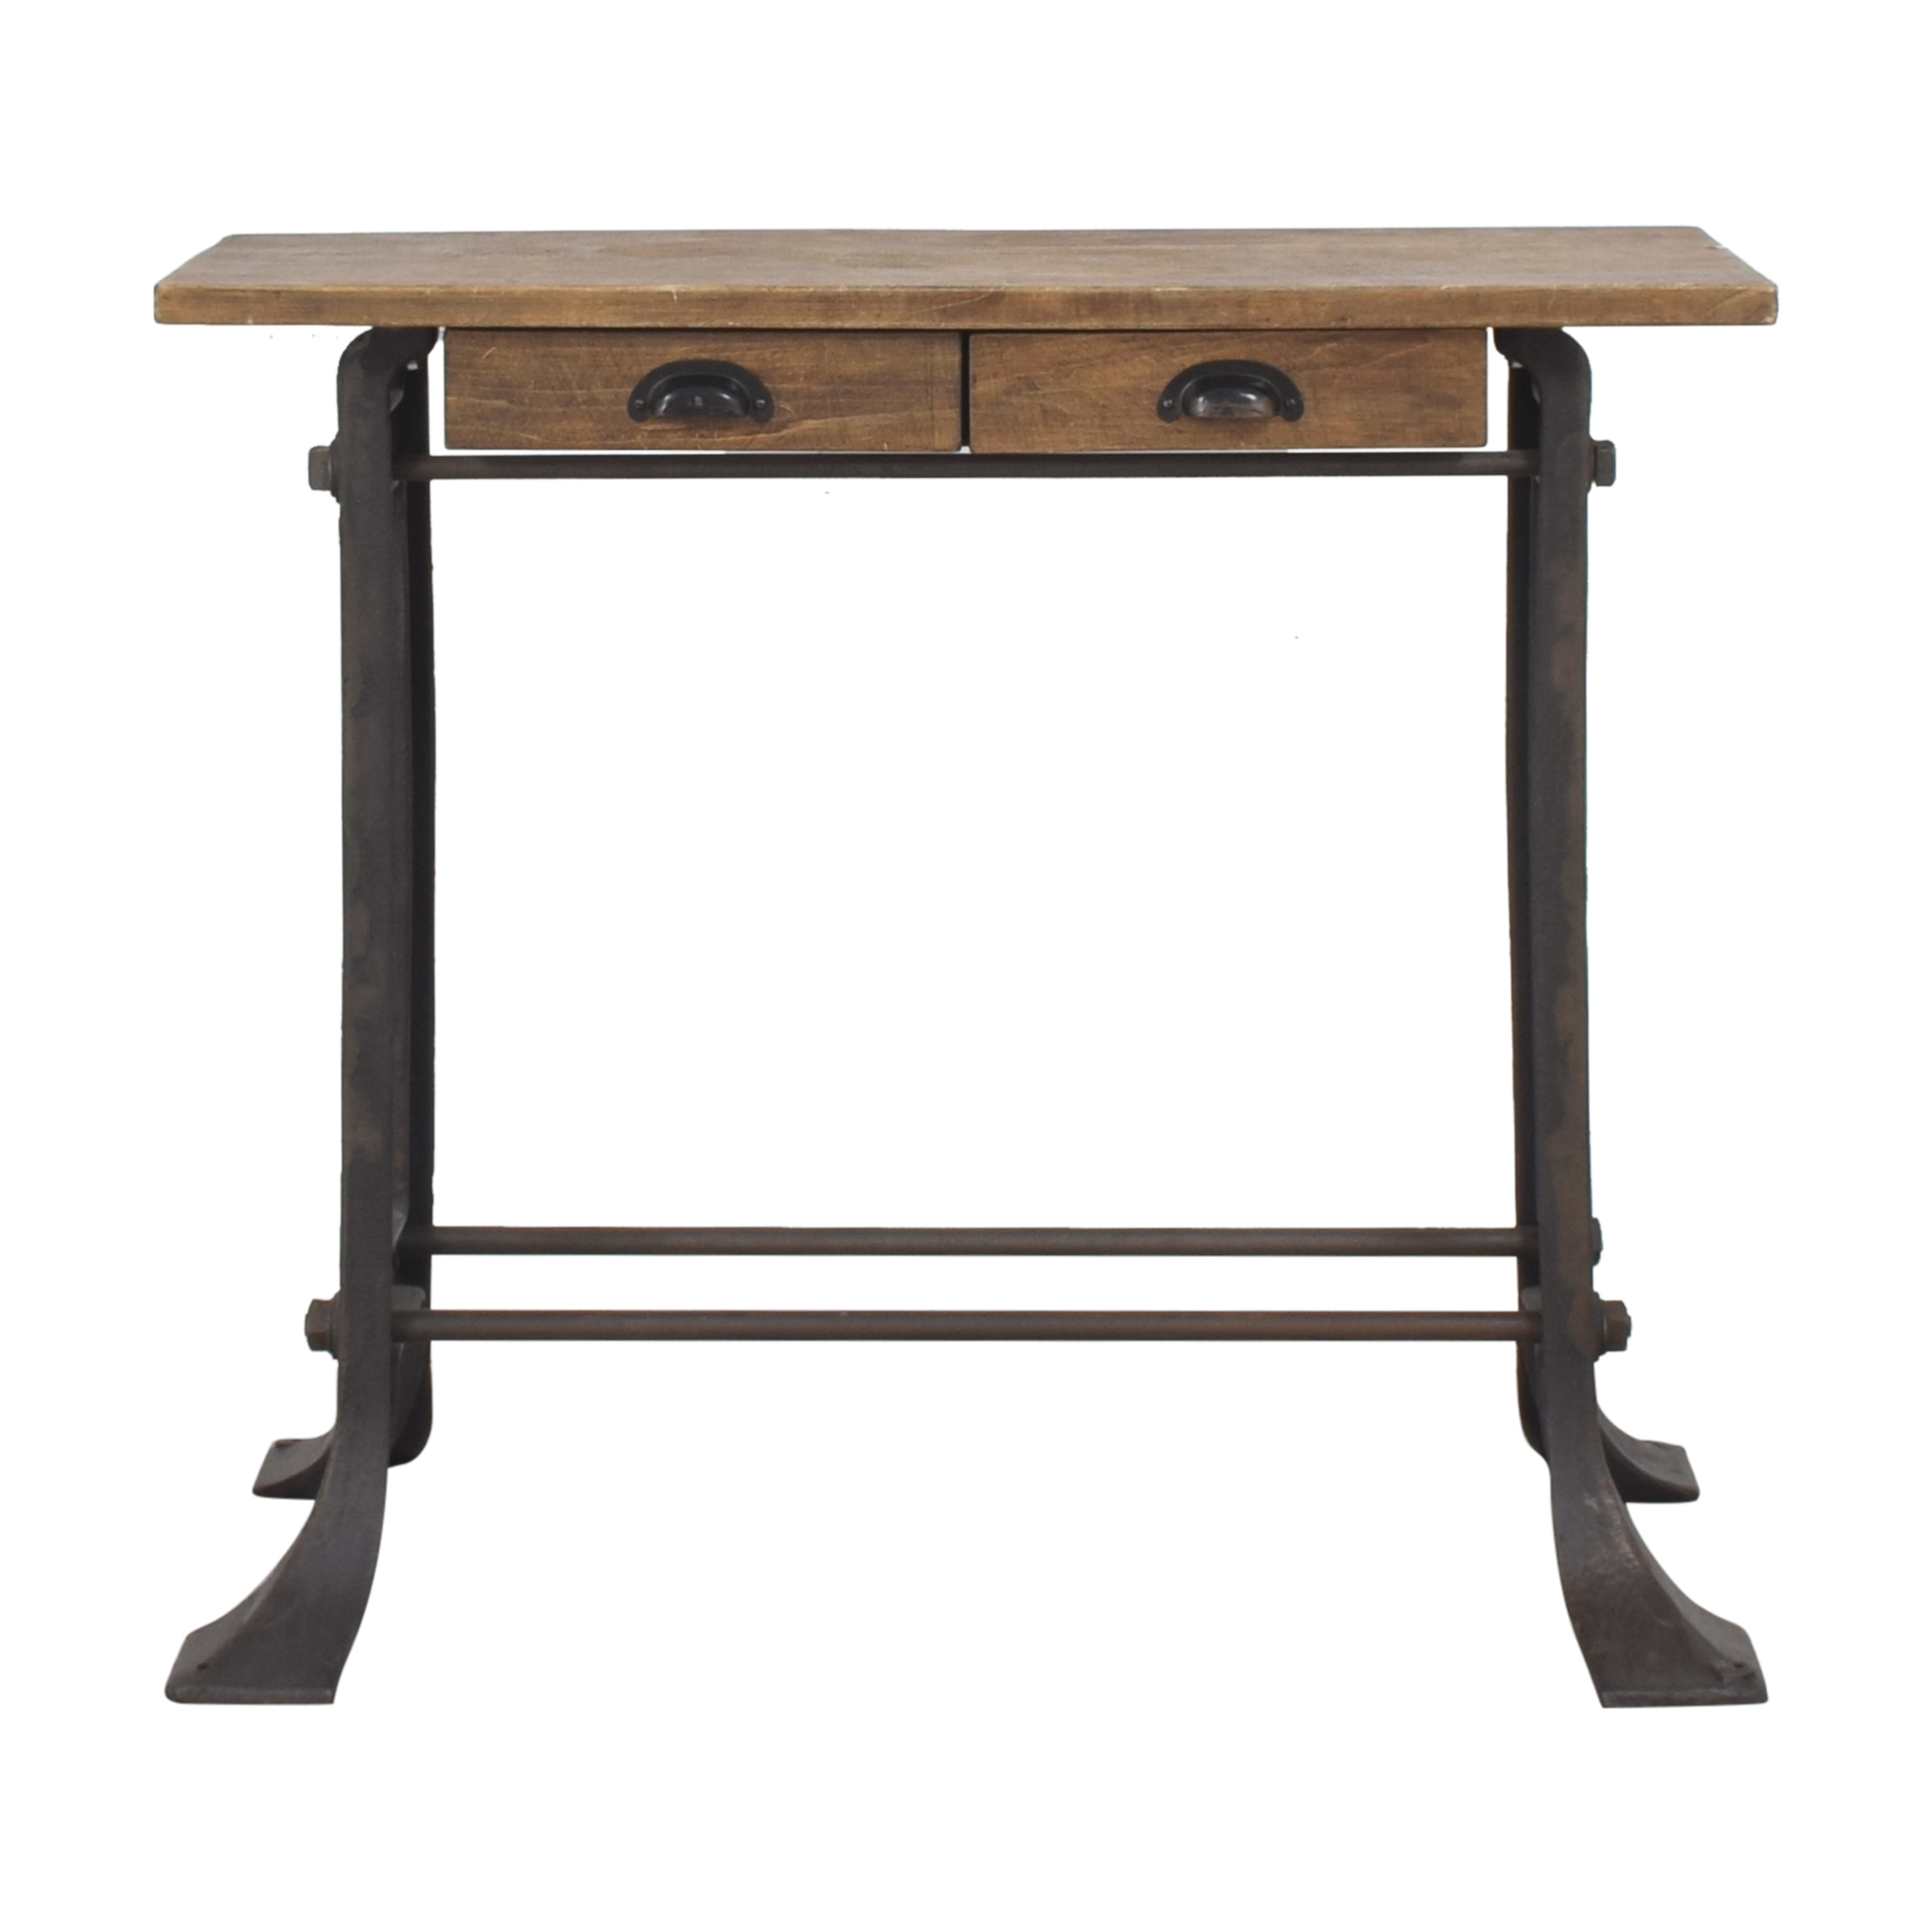 Get Back Get Back Industrial Console Table for sale